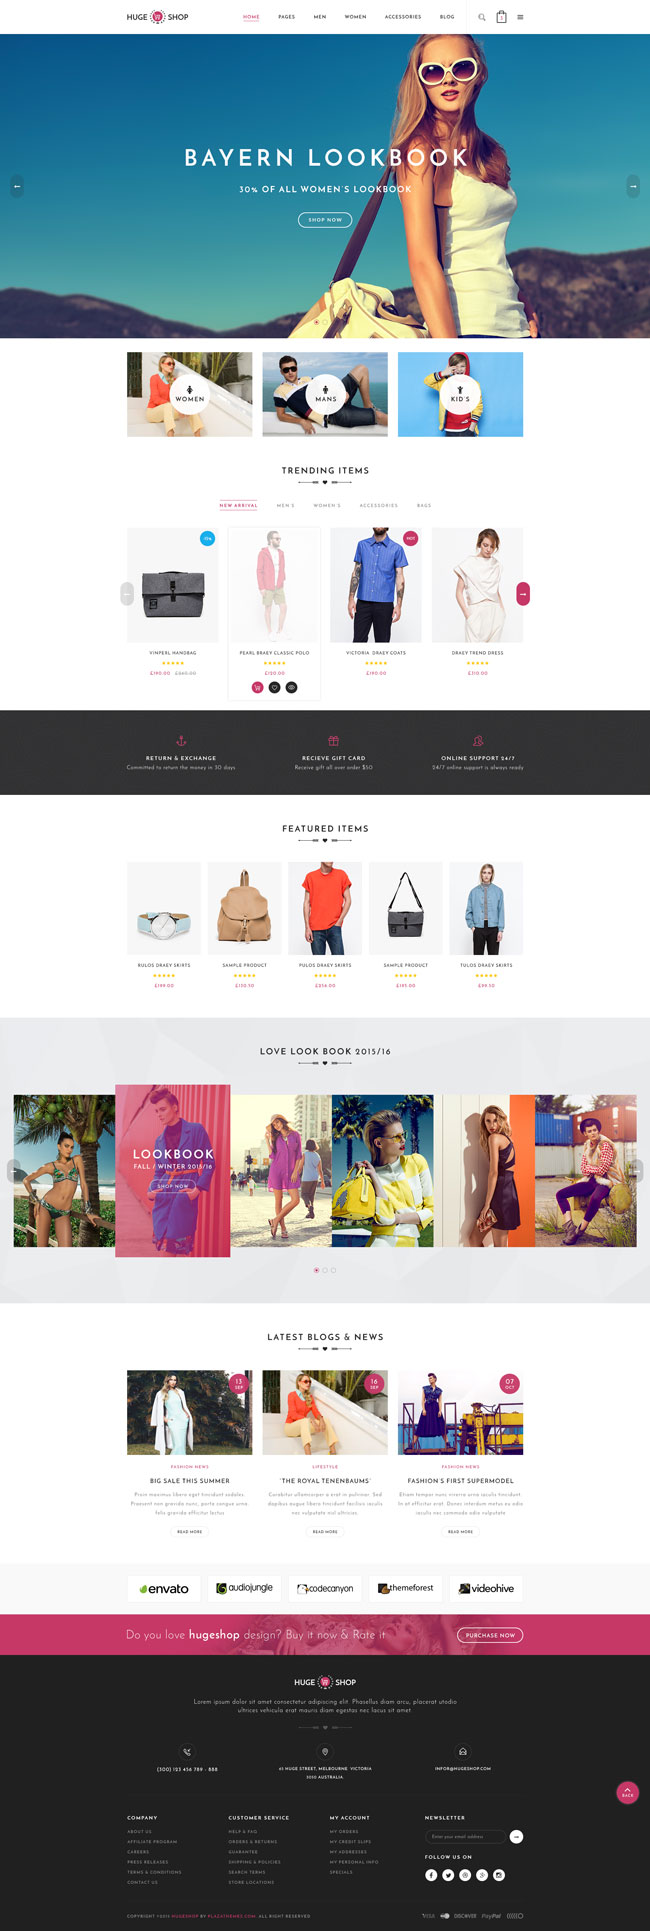 HugeShop-Wonderful-Multi-Concept-eCommerce-PSD-Template